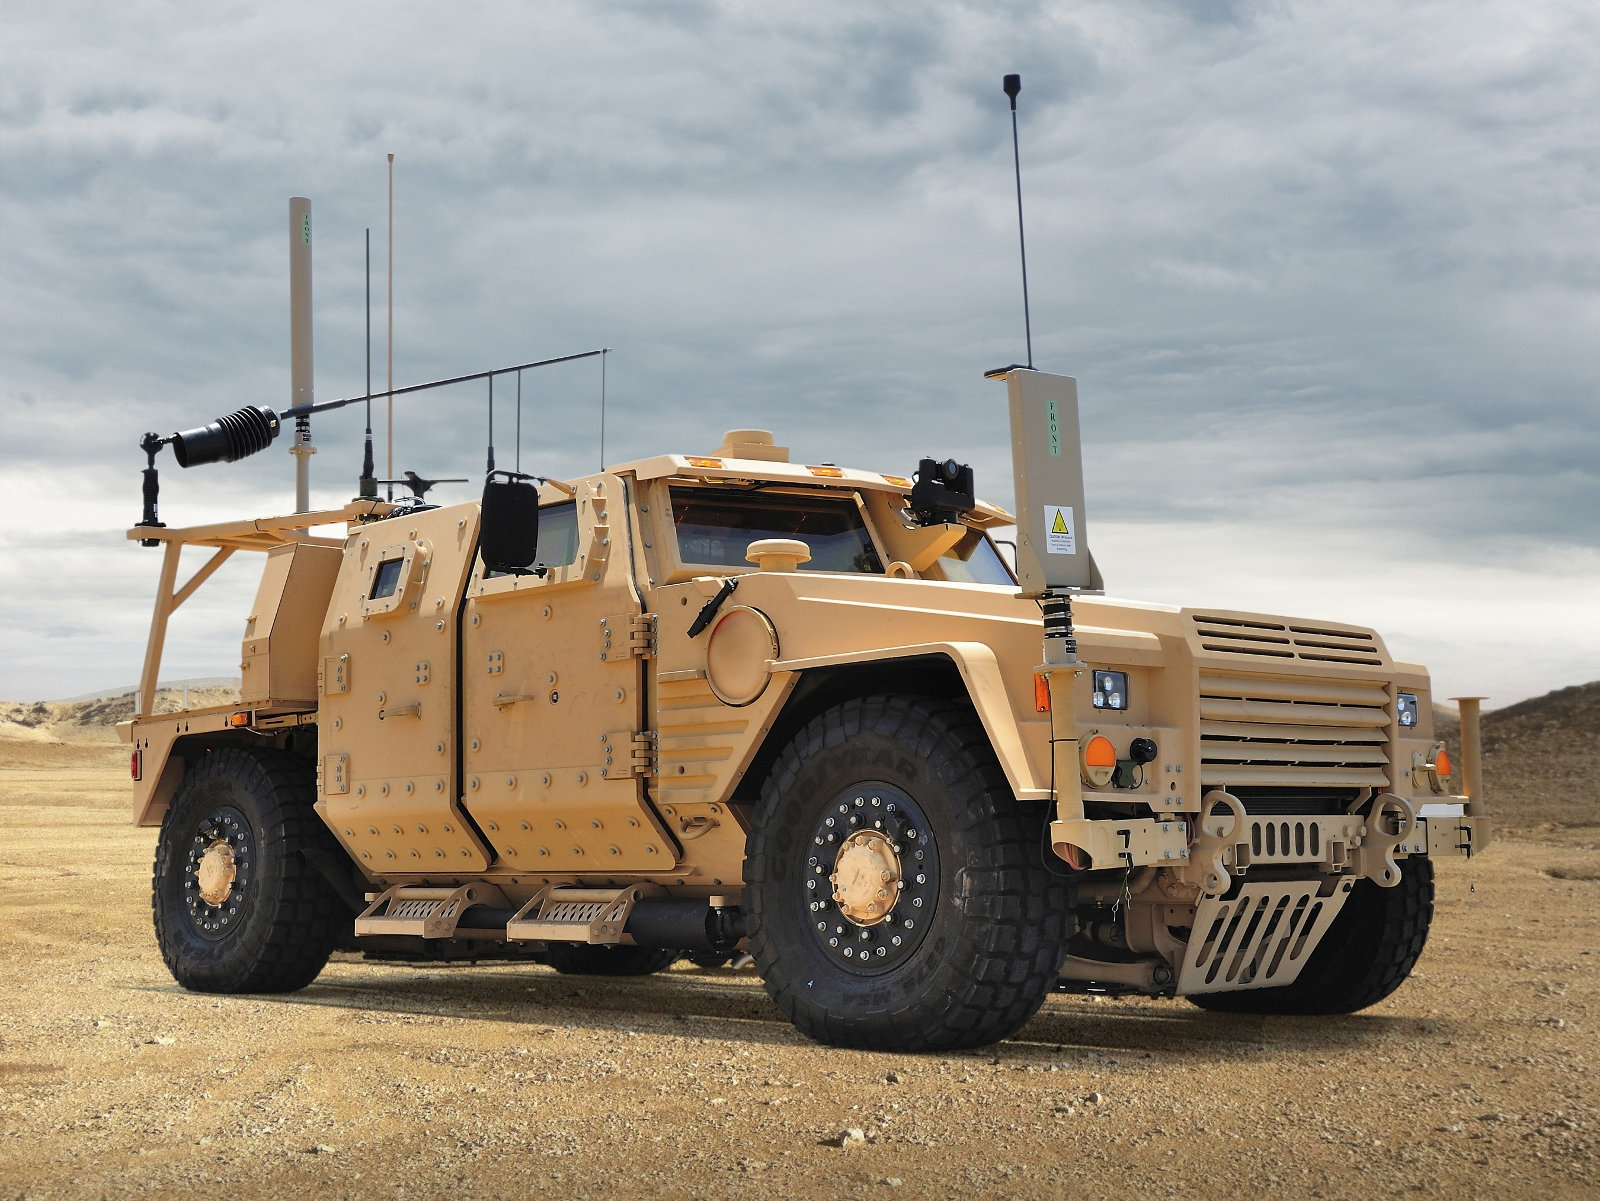 Lockheed Martin's latest counter-IED system to support partner nations